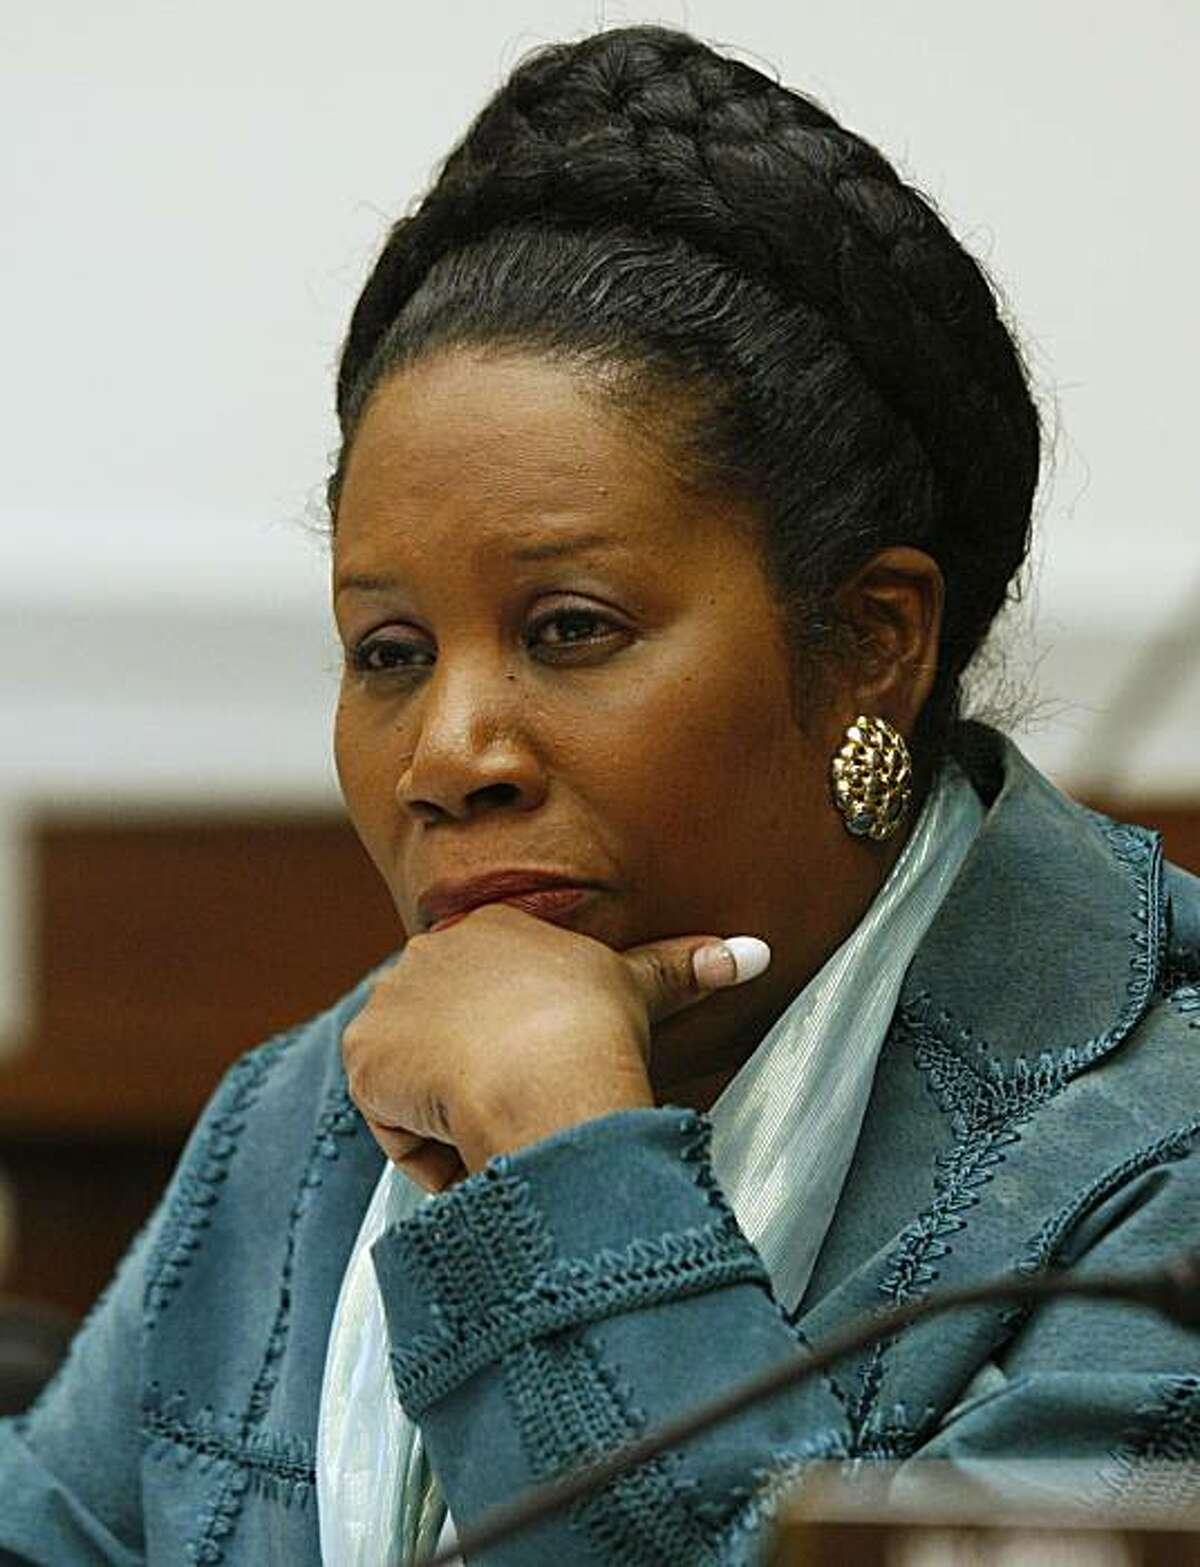 House Foreign Affairs Committee member Rep. Sheila Jackson-Lee, D-Texas, listens to witness testimony during a hearing on Capitol Hill in Washington, Wednesday, Oct. 24, 2007. (AP Photo/Charles Dharapak)